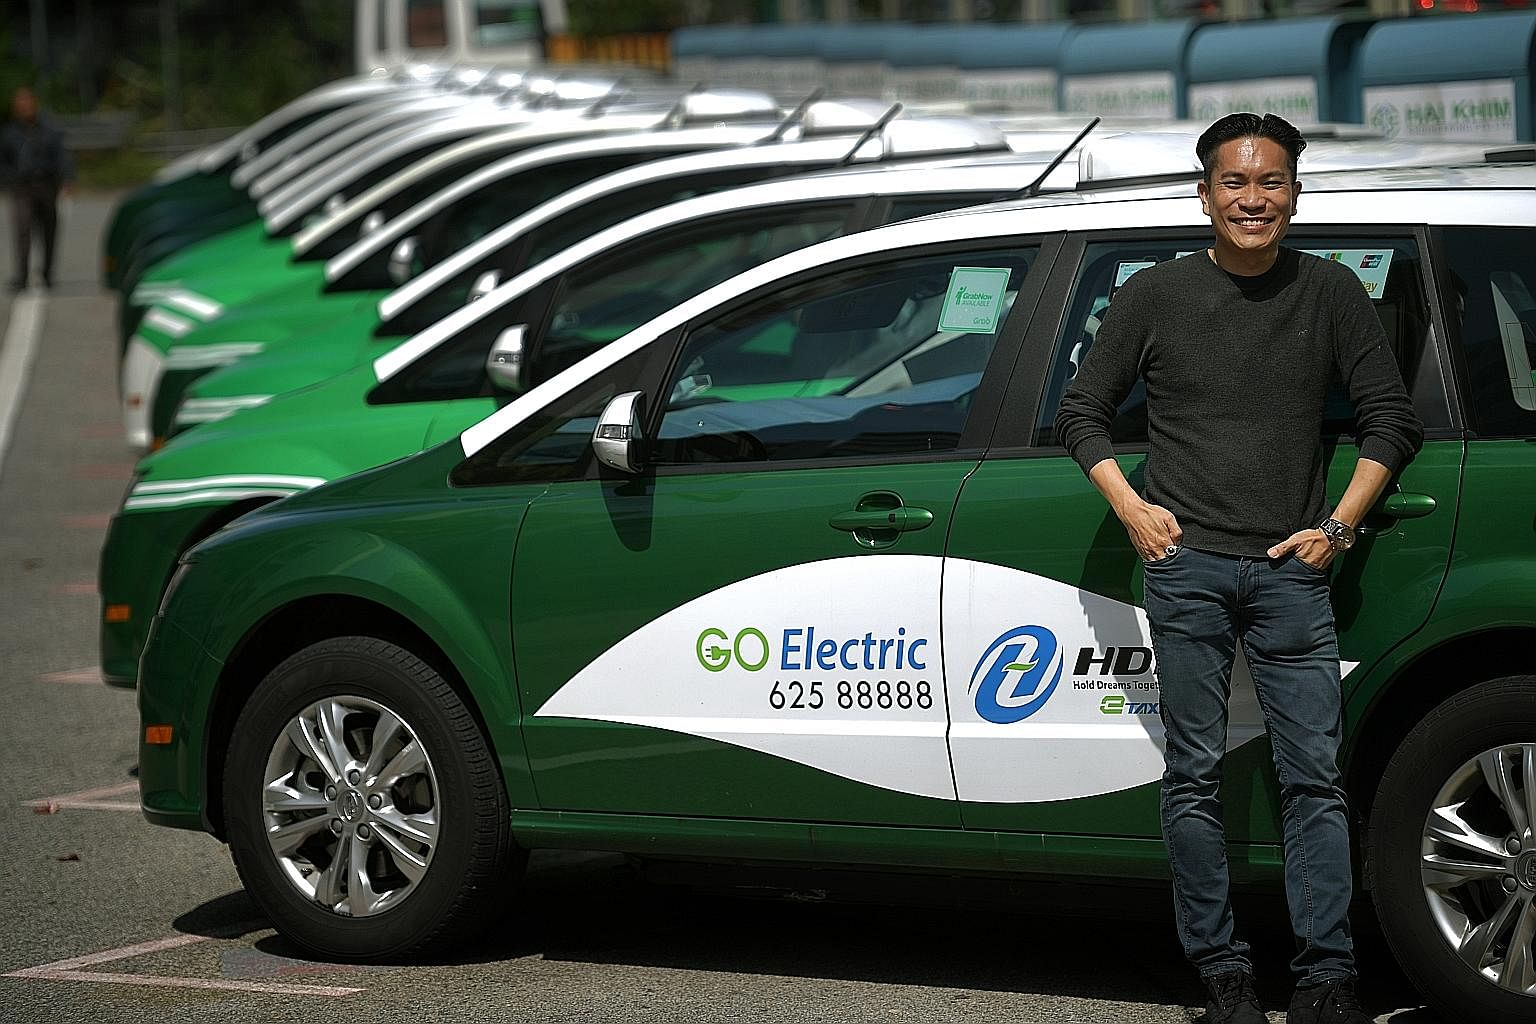 Electric Taxi that operates in Singapore | The Straits Times